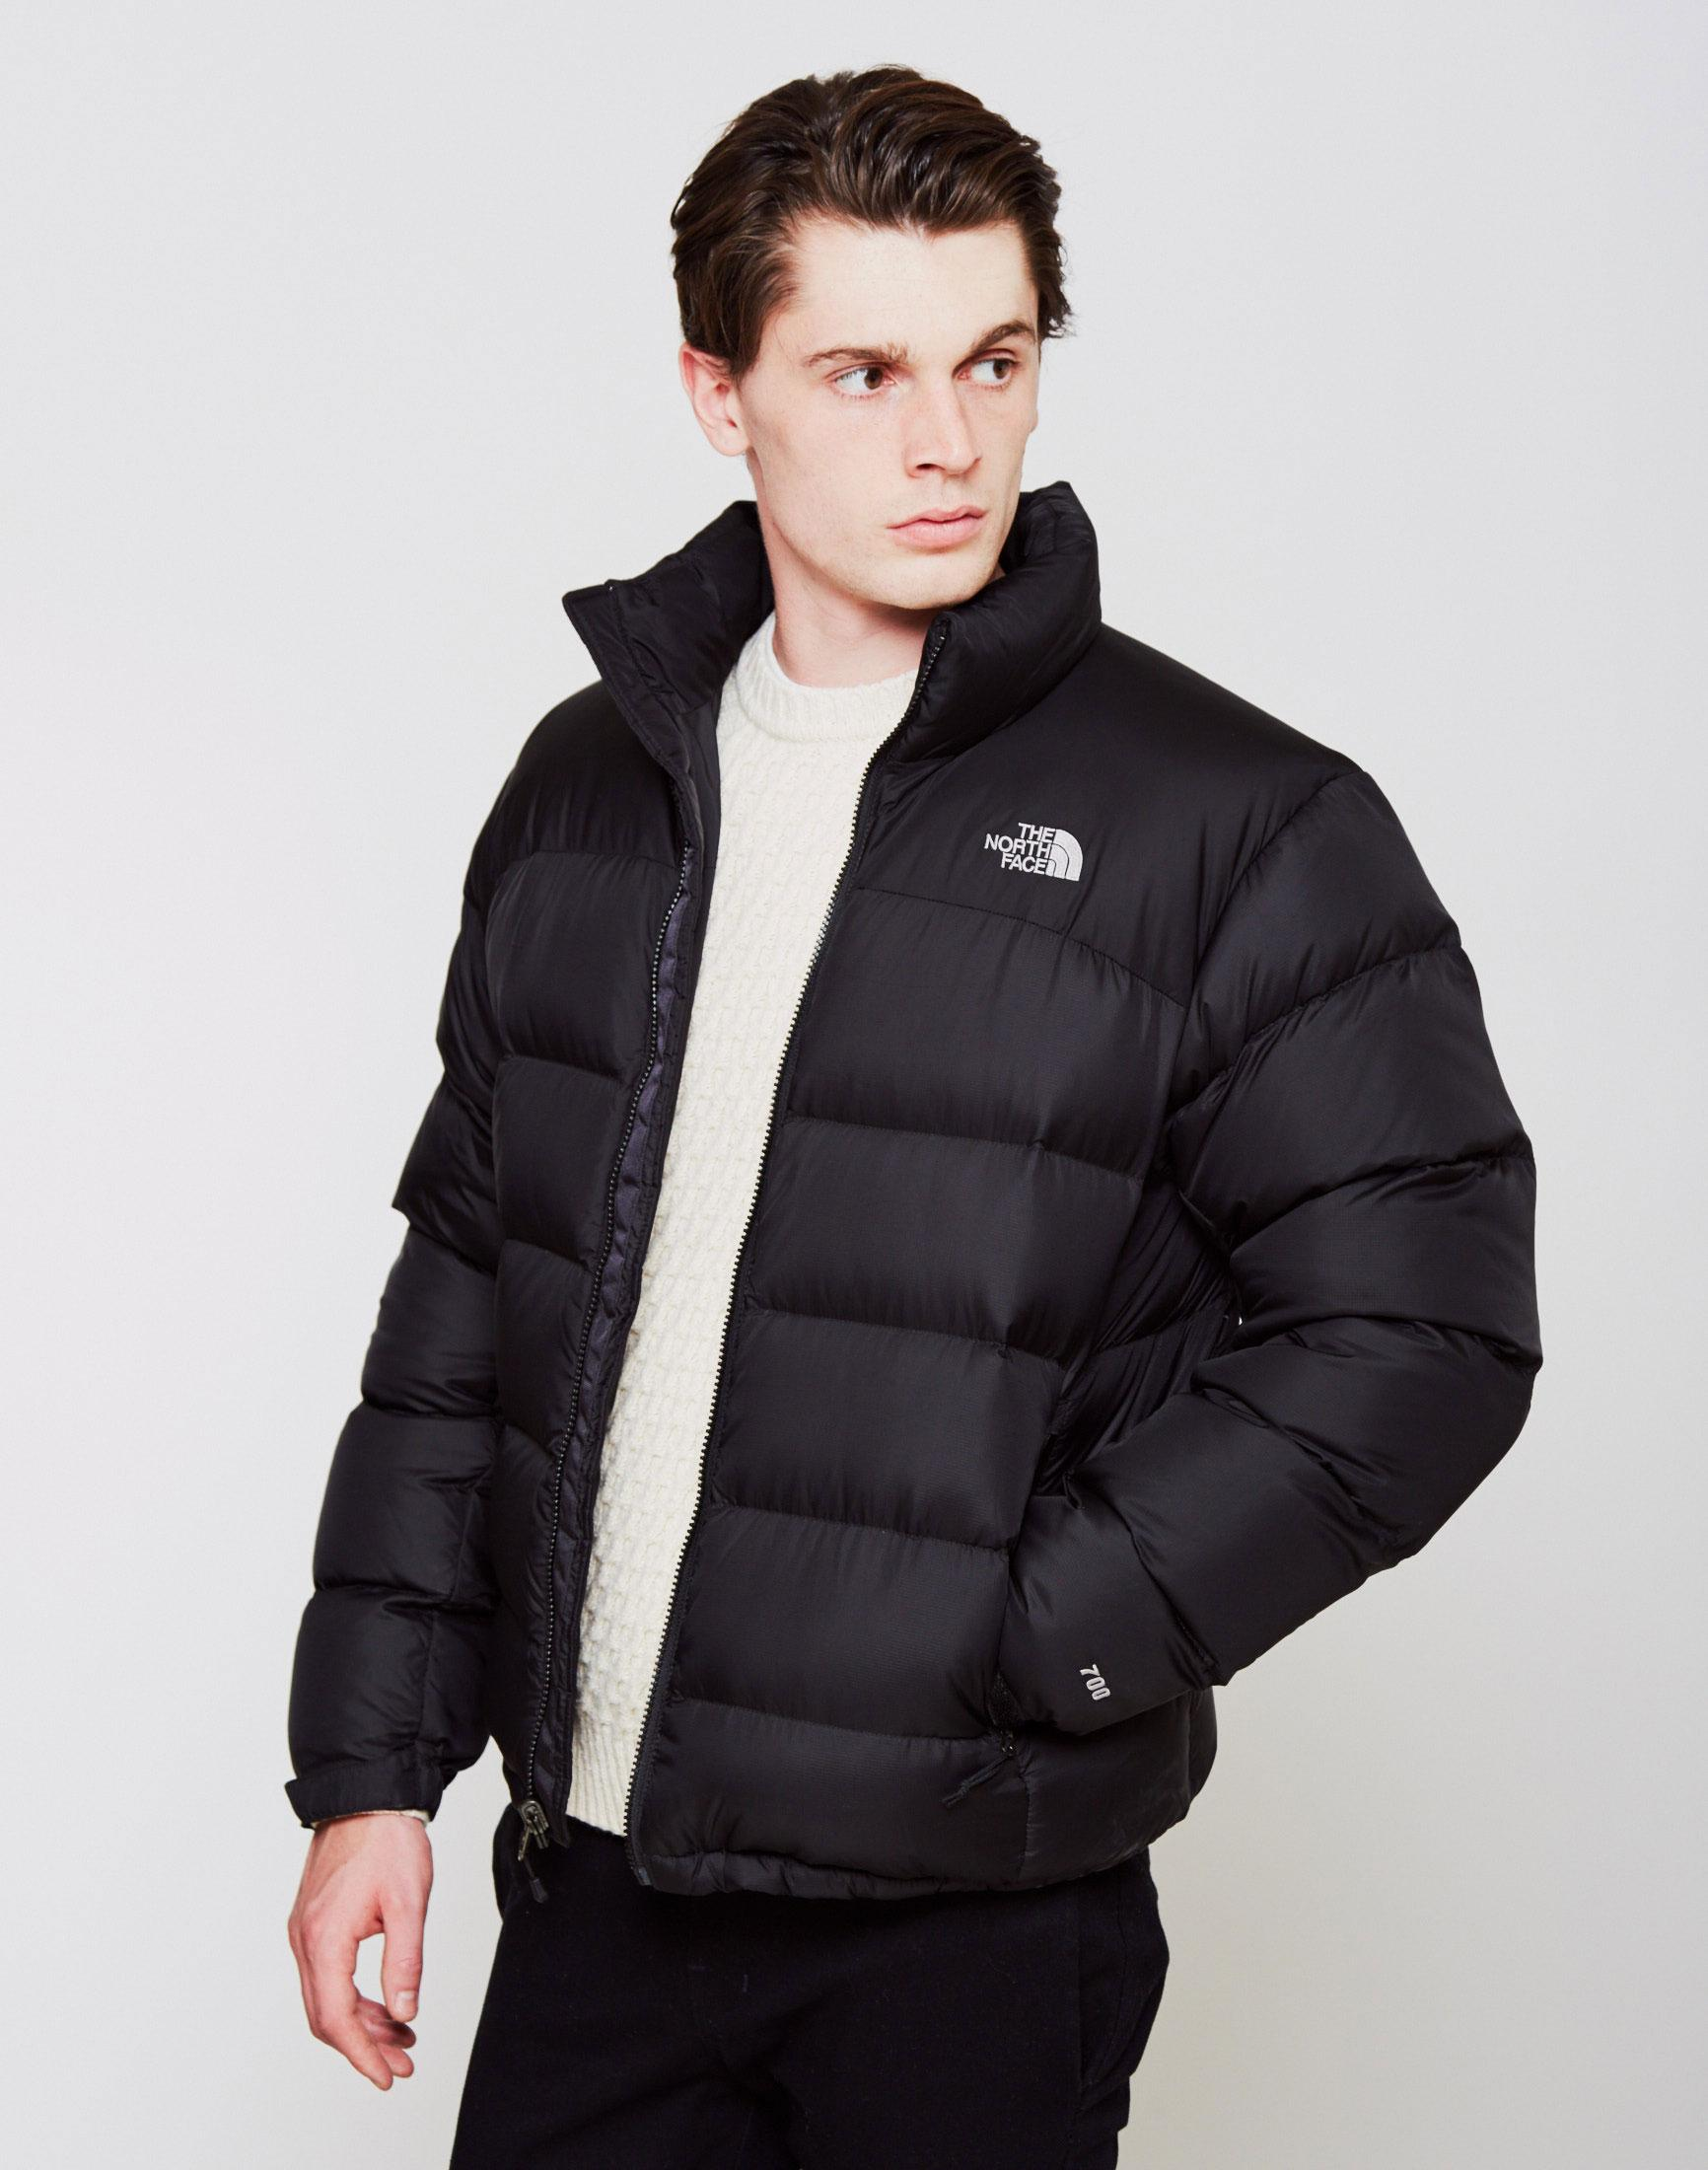 bdee1f5ef192 Lyst - The North Face Nuptse 2 Padded Jacket in Black for Men